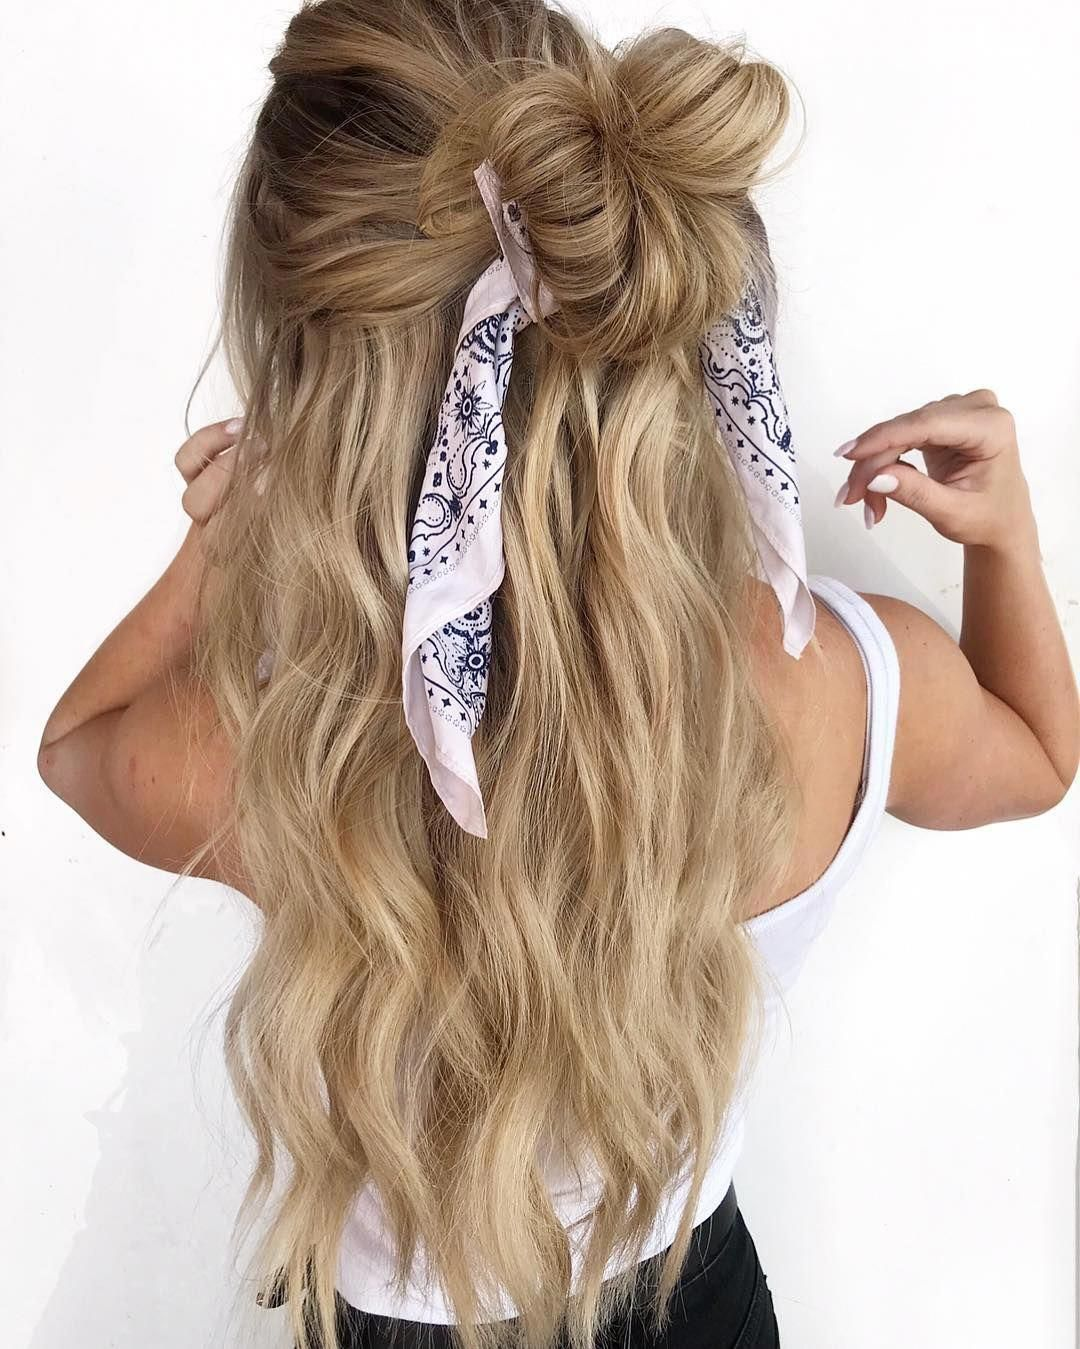 20 Easy Summer Hairstyles You Can Copy Right Now In 2020 Bandana Hairstyles For Long Hair Hair Styles Easy Summer Hairstyles